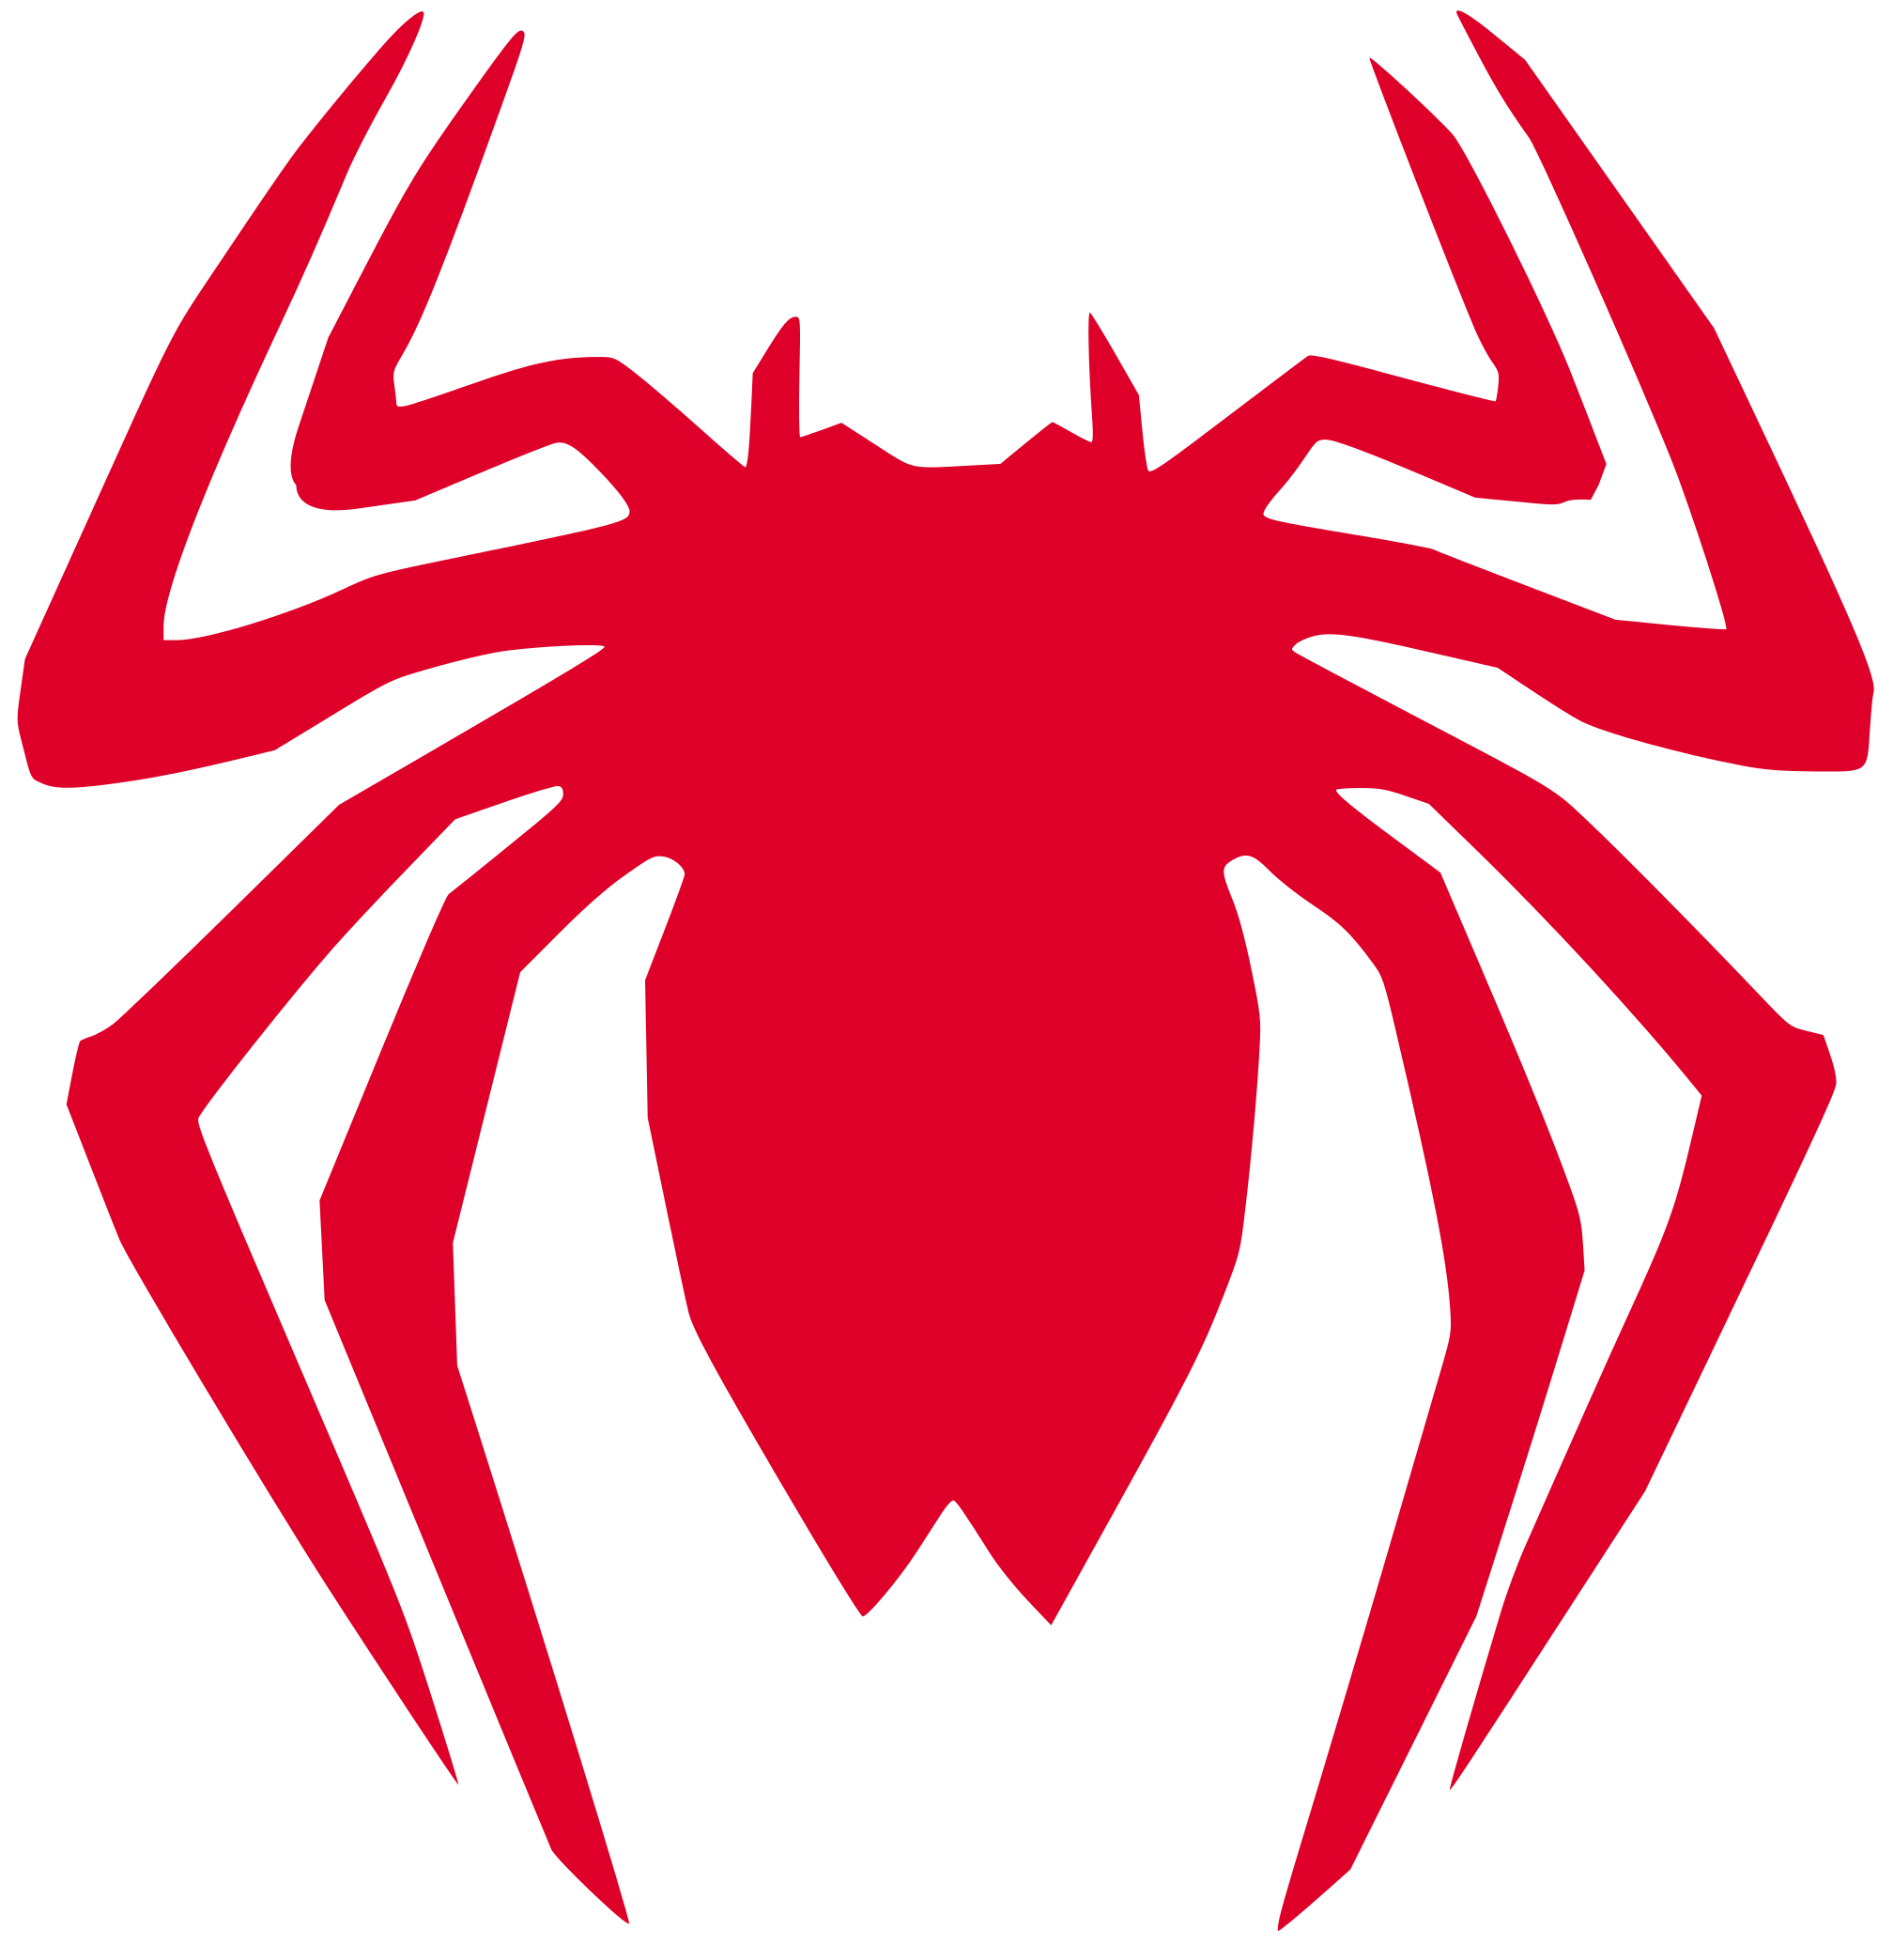 Spiderman symbol png. File back spider man